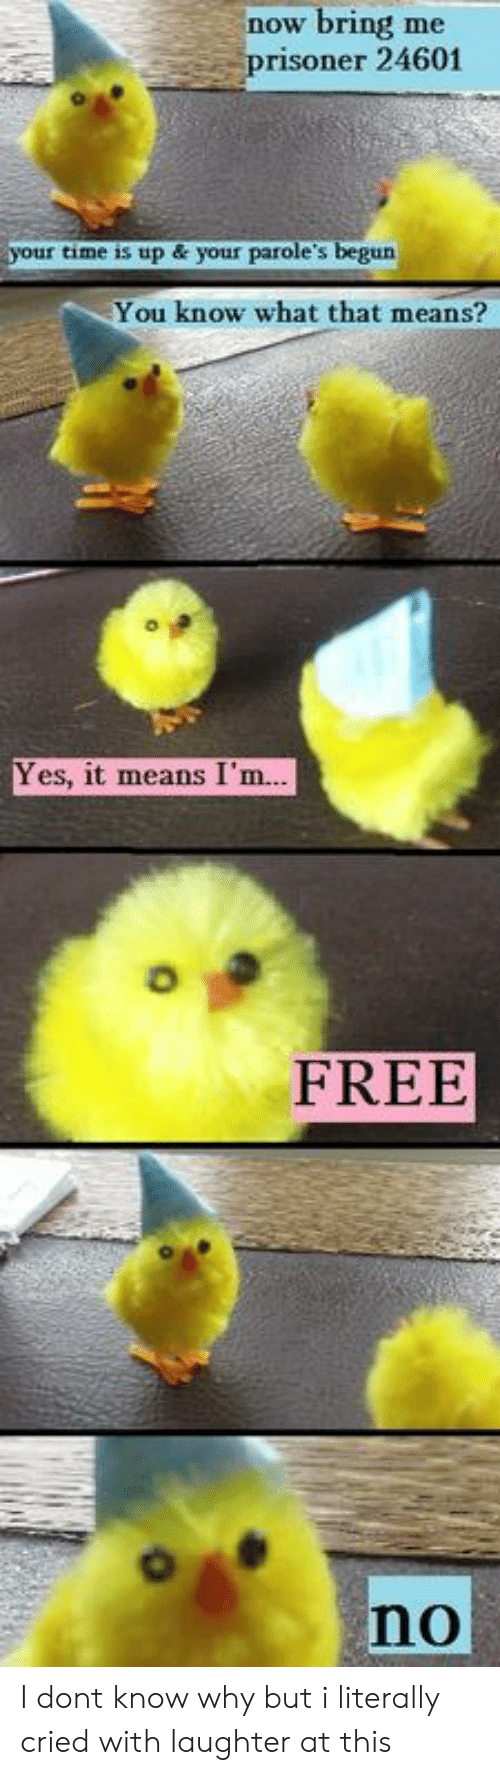 im free: now bring me  prisoner 24601  your time is up & your parole's begun  You know what that means?  Yes, it means I'm.  FREE  no I dont know why but i literally cried with laughter at this